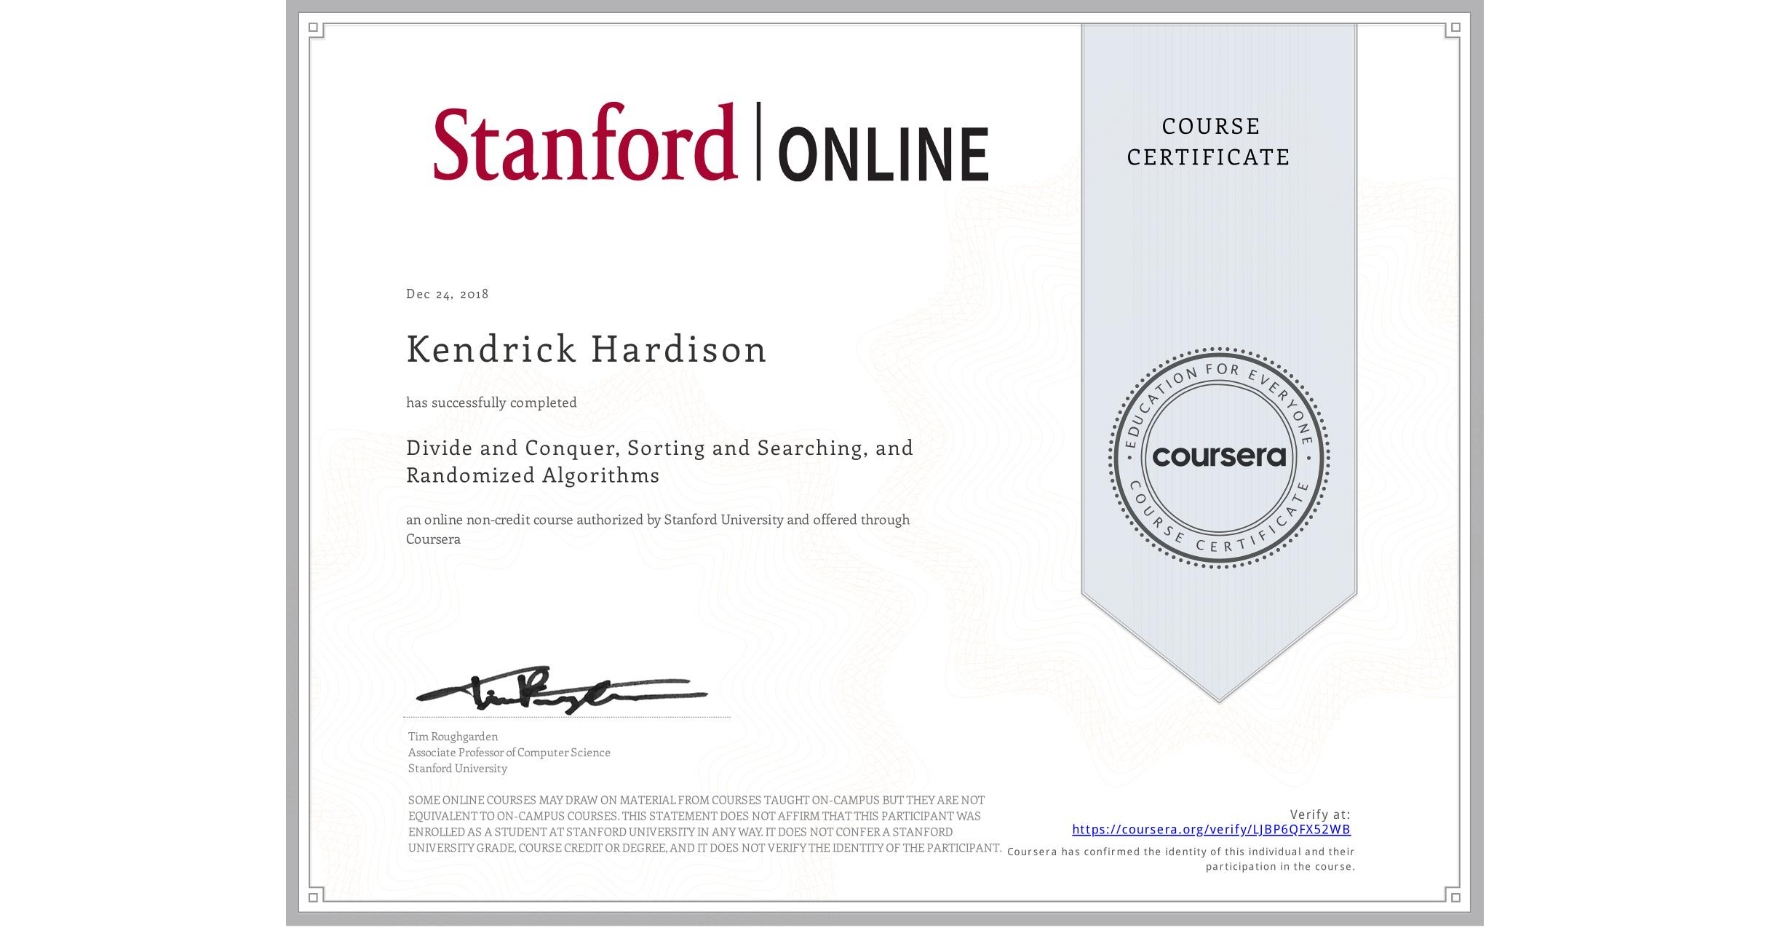 View certificate for Kendrick Hardison, Divide and Conquer, Sorting and Searching, and Randomized Algorithms, an online non-credit course authorized by Stanford University and offered through Coursera